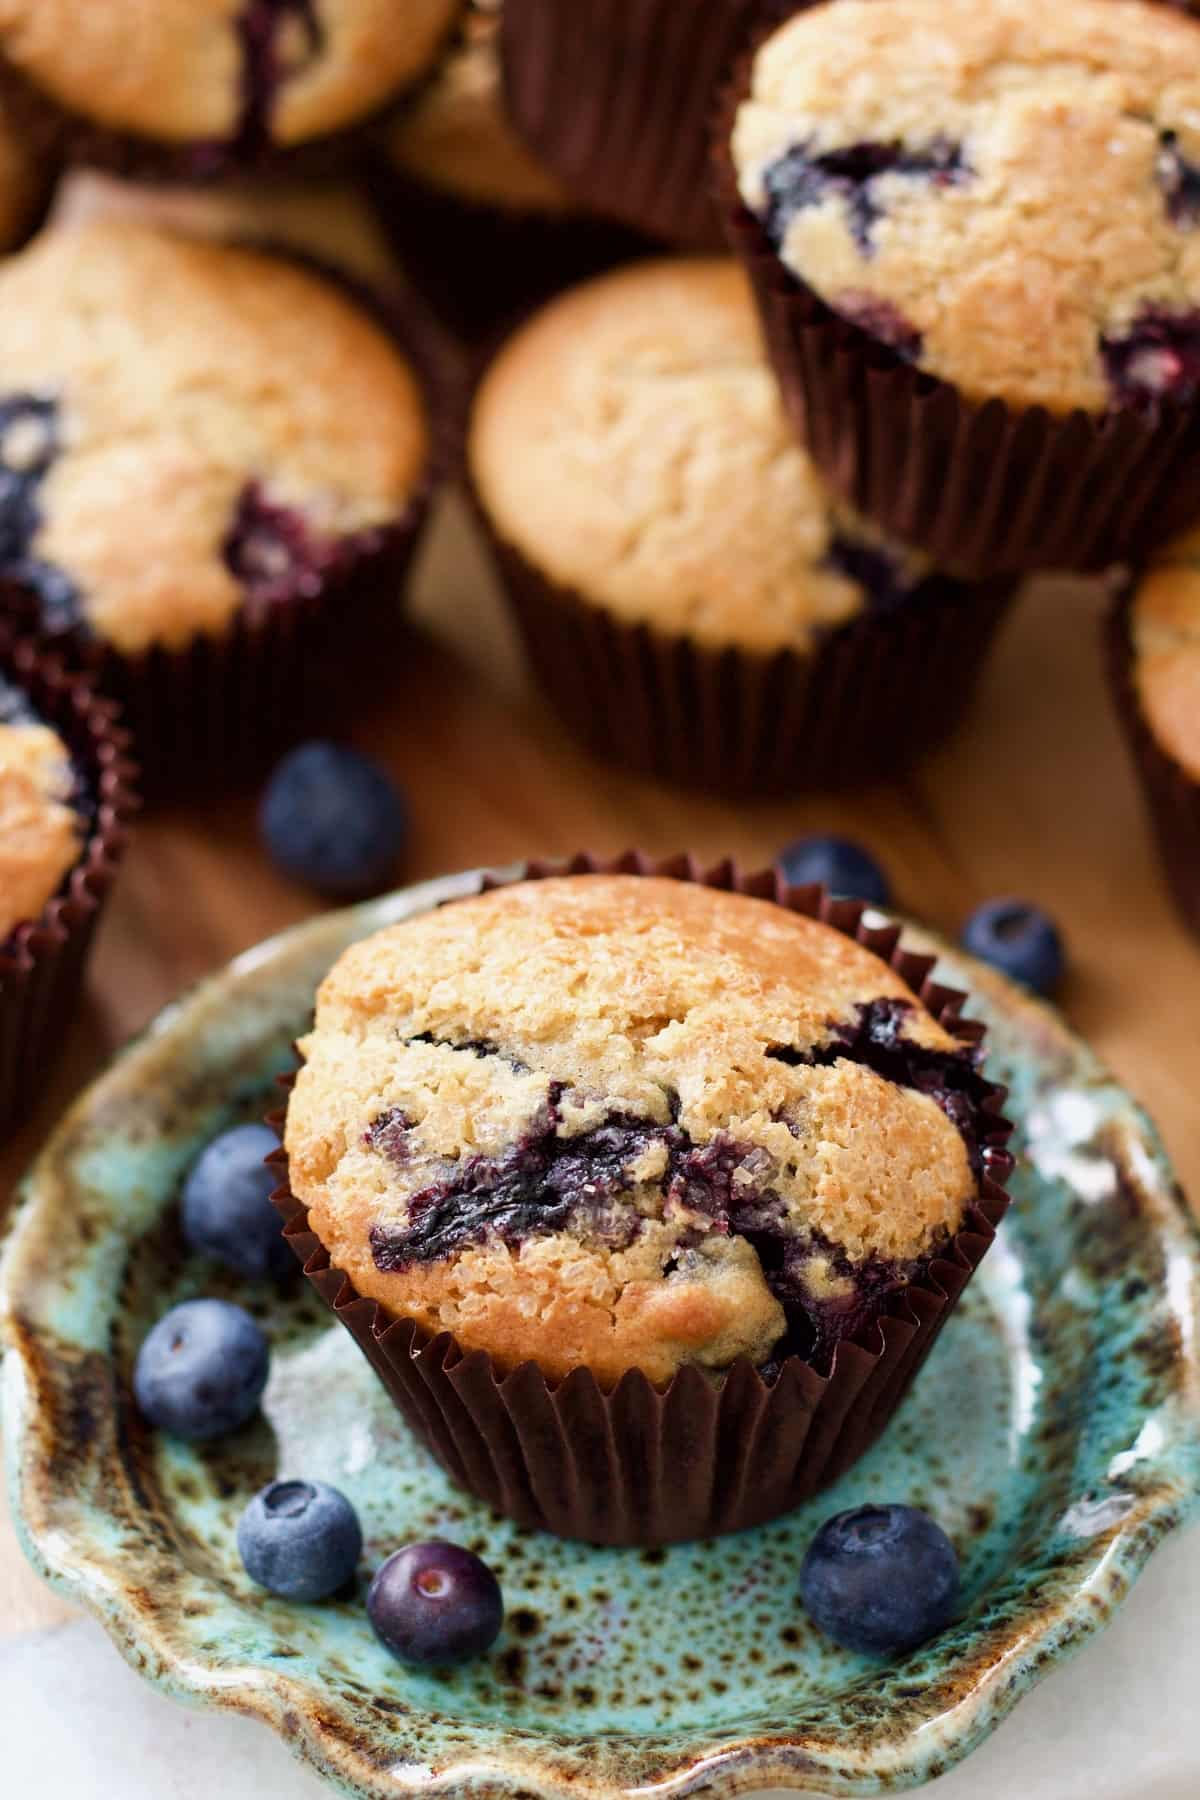 Blueberry muffin on a plate with more muffins behind it.